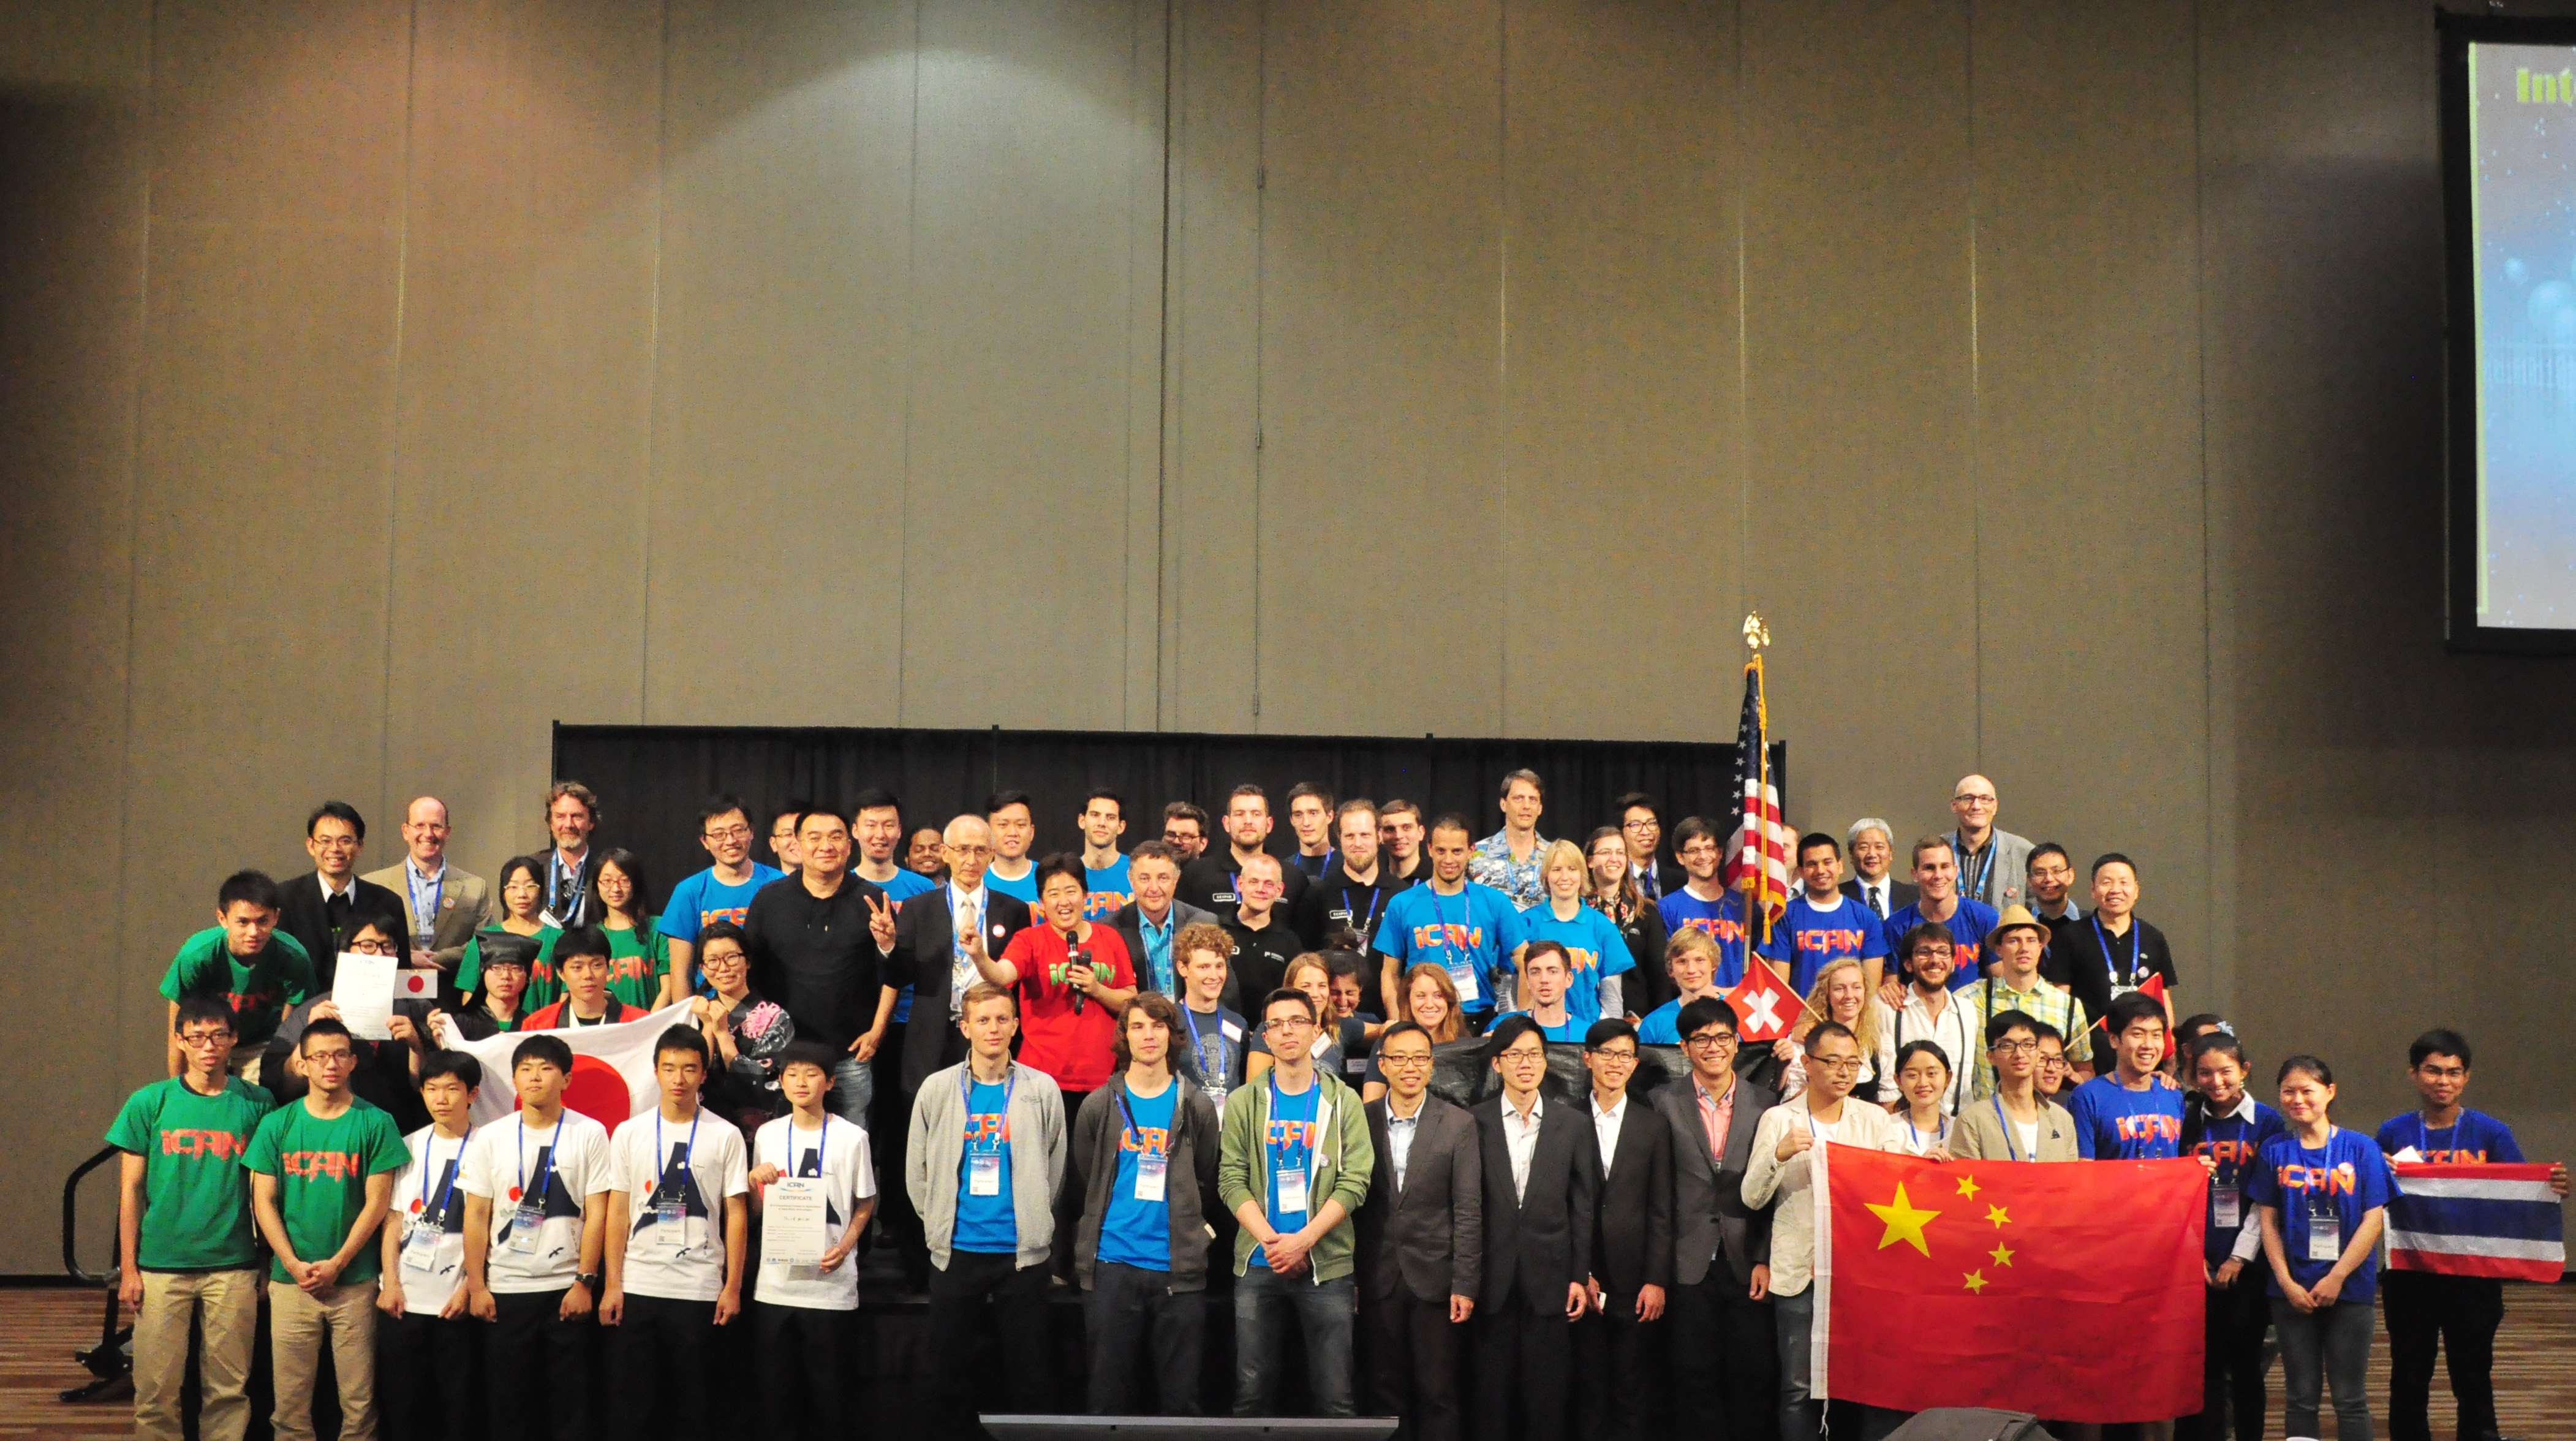 The iCAN contingent, representing 20 countries at the World Finals.